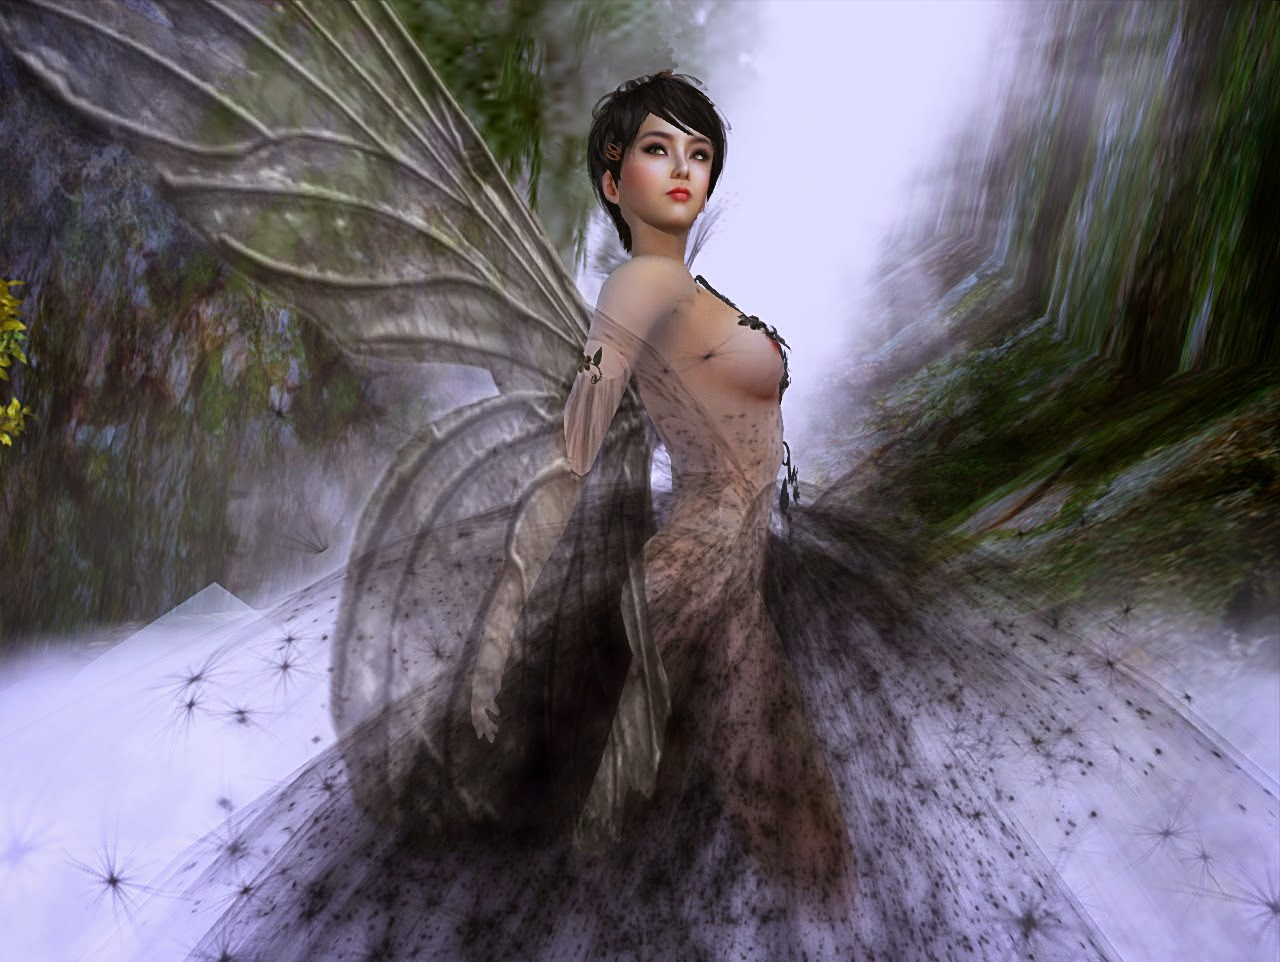 Mariko Nightfire: A Virtual Life: Mariko Magic: Faerie Myst